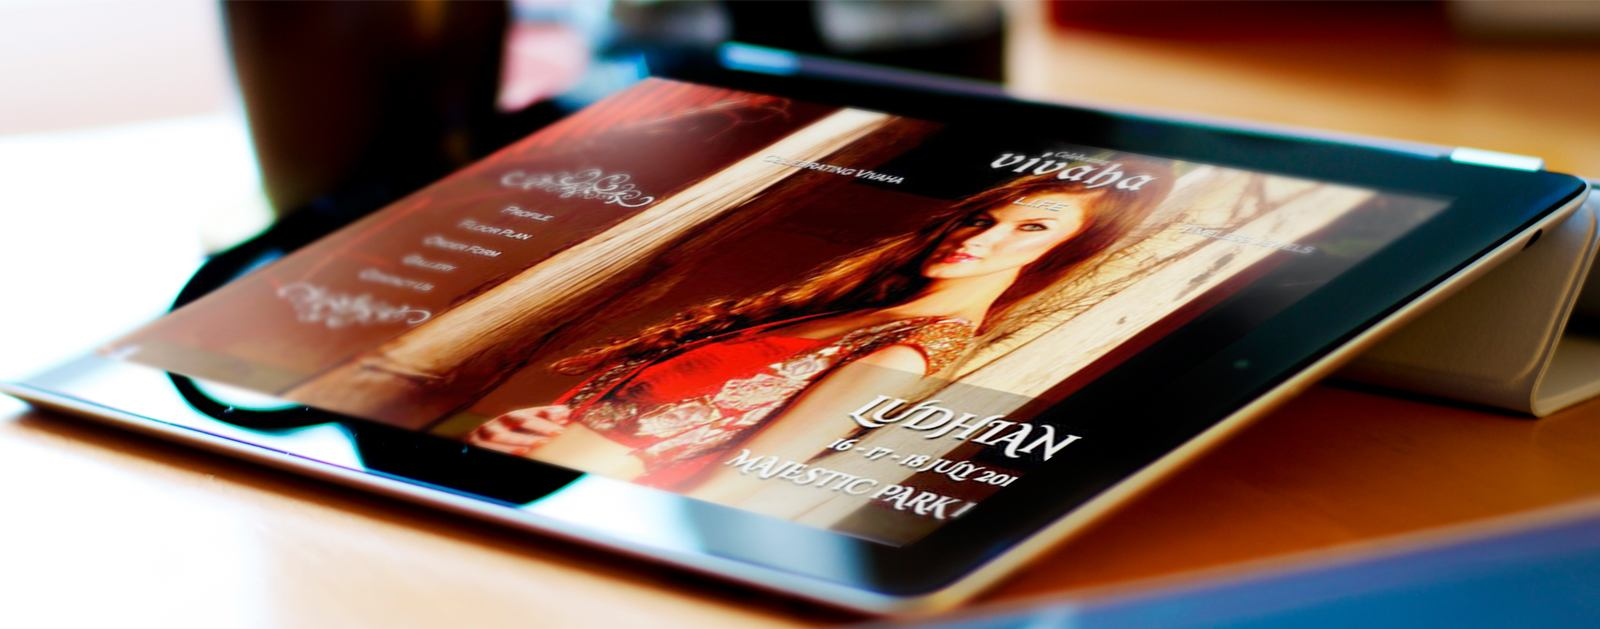 Perfect Images For Your Ecommerce Website_2